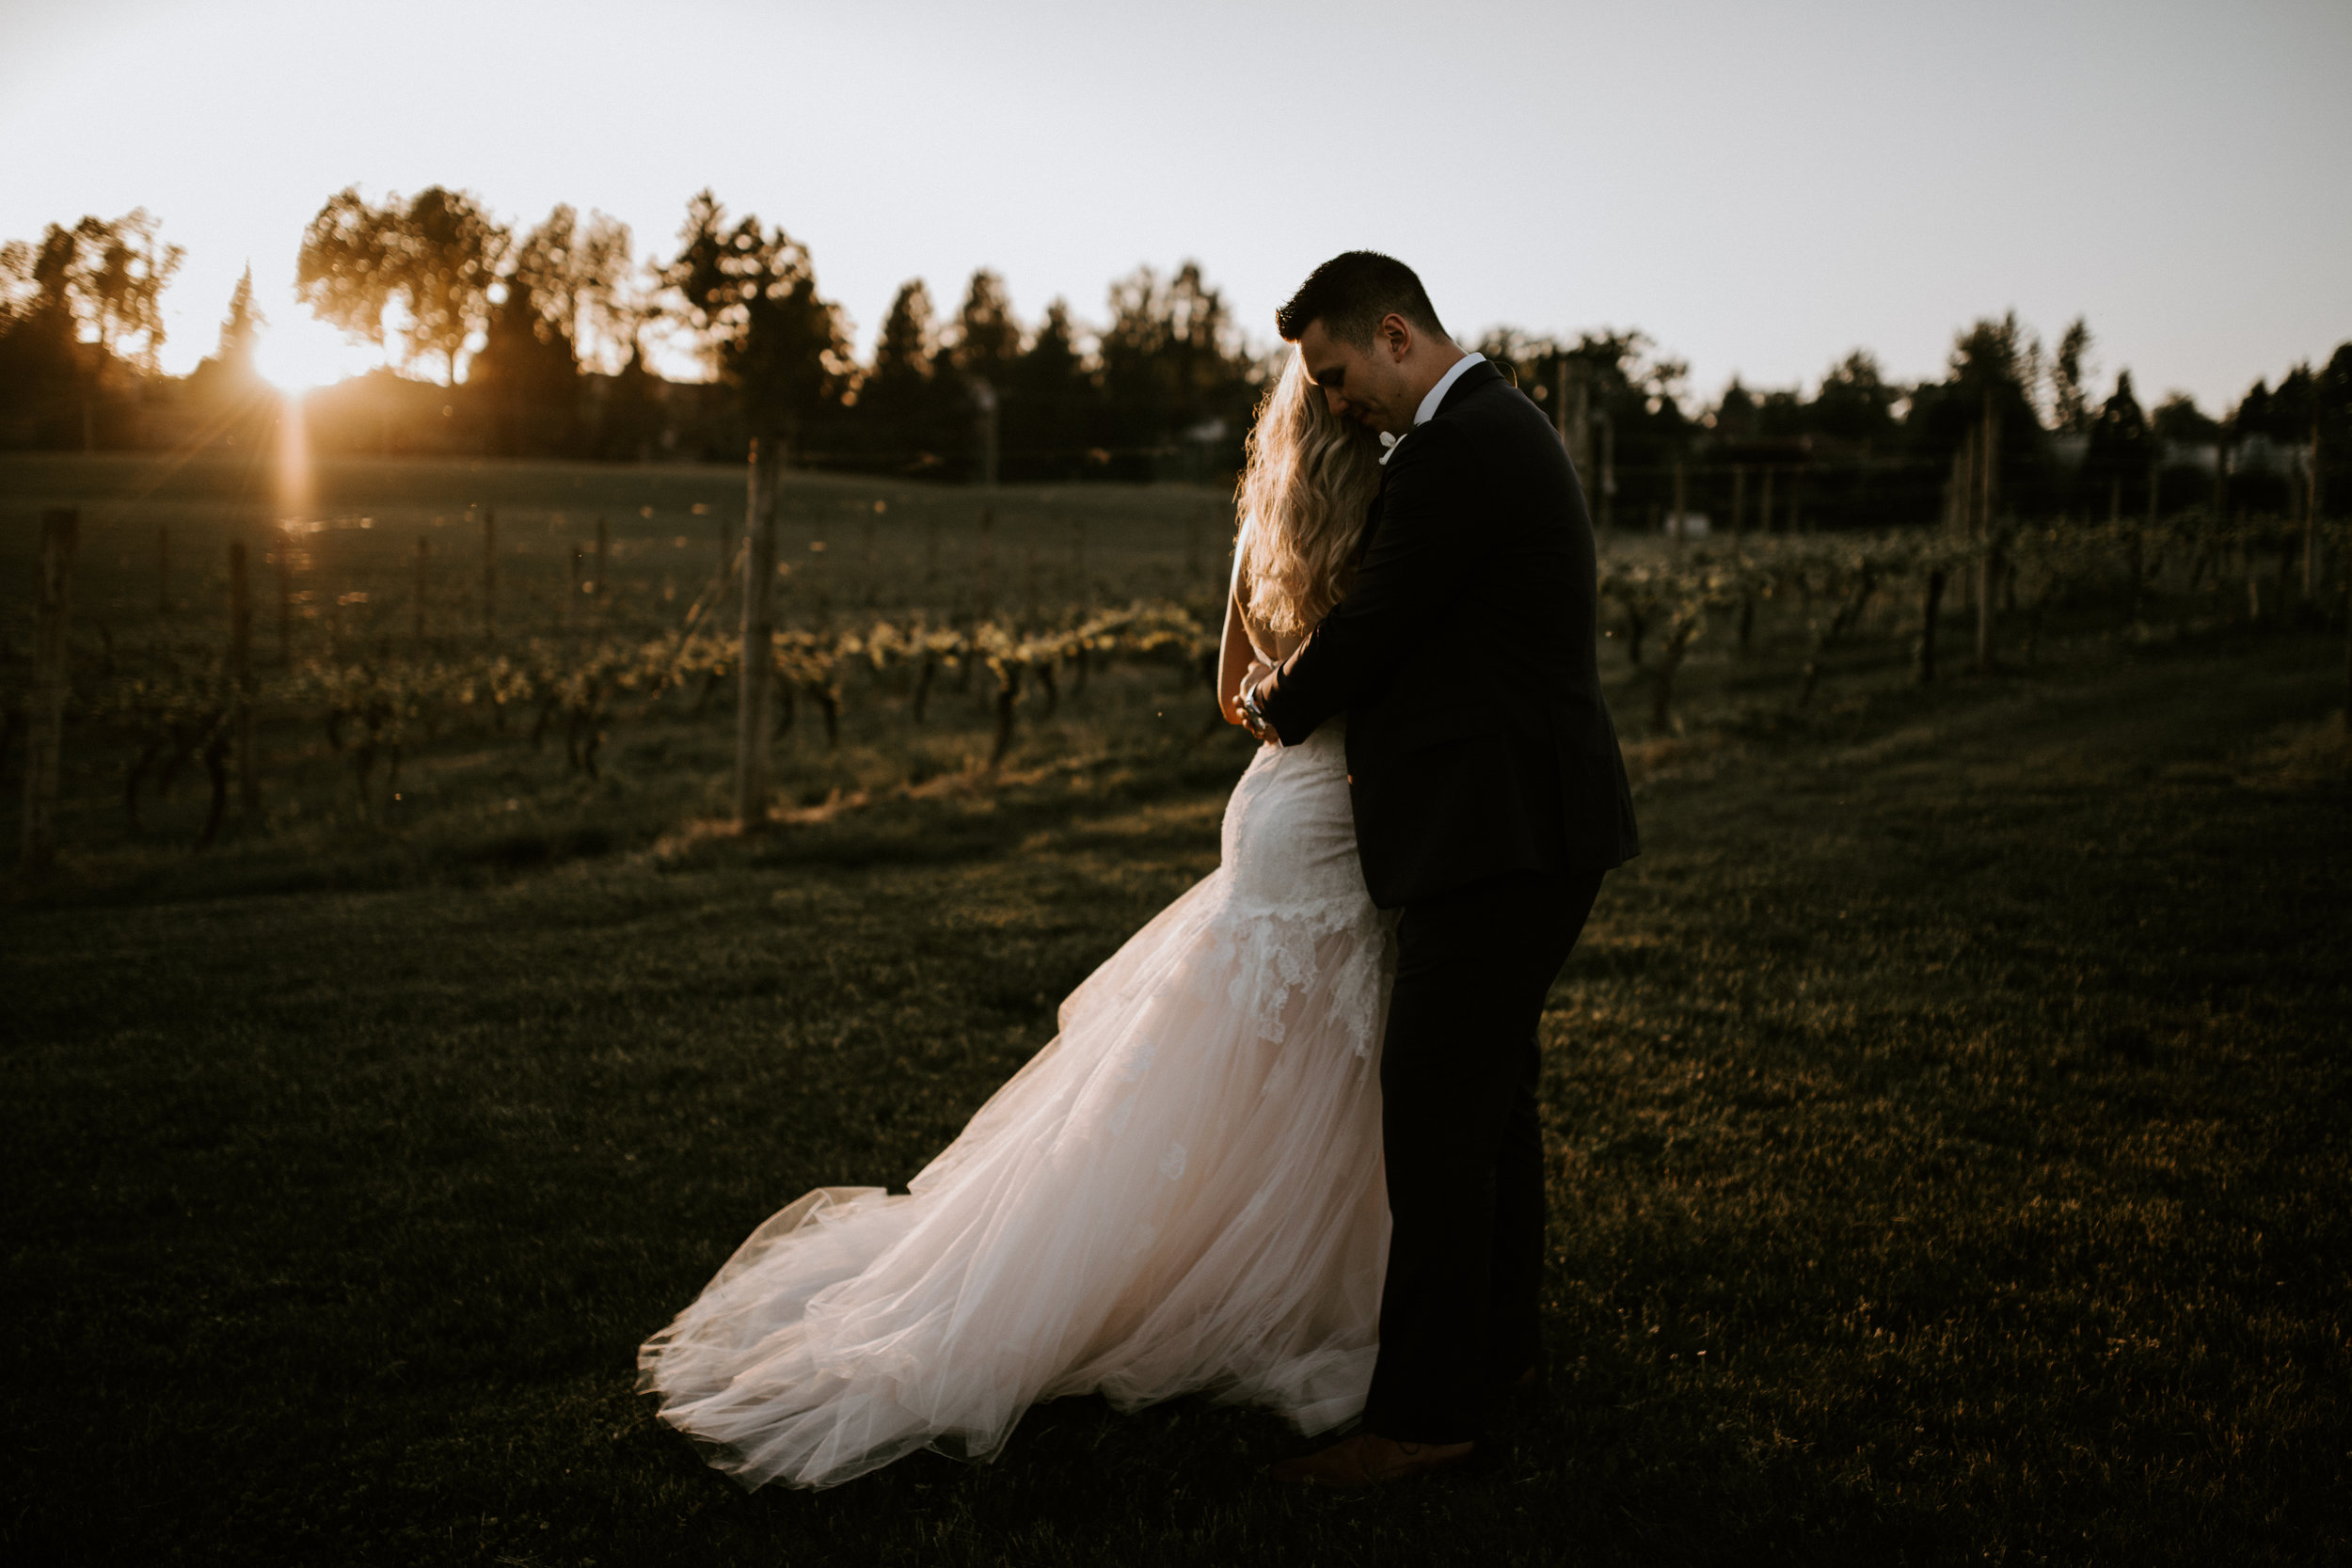 Bride and Groom photo during sunset at their wedding at Mount Lehman Winery in Abbotsford